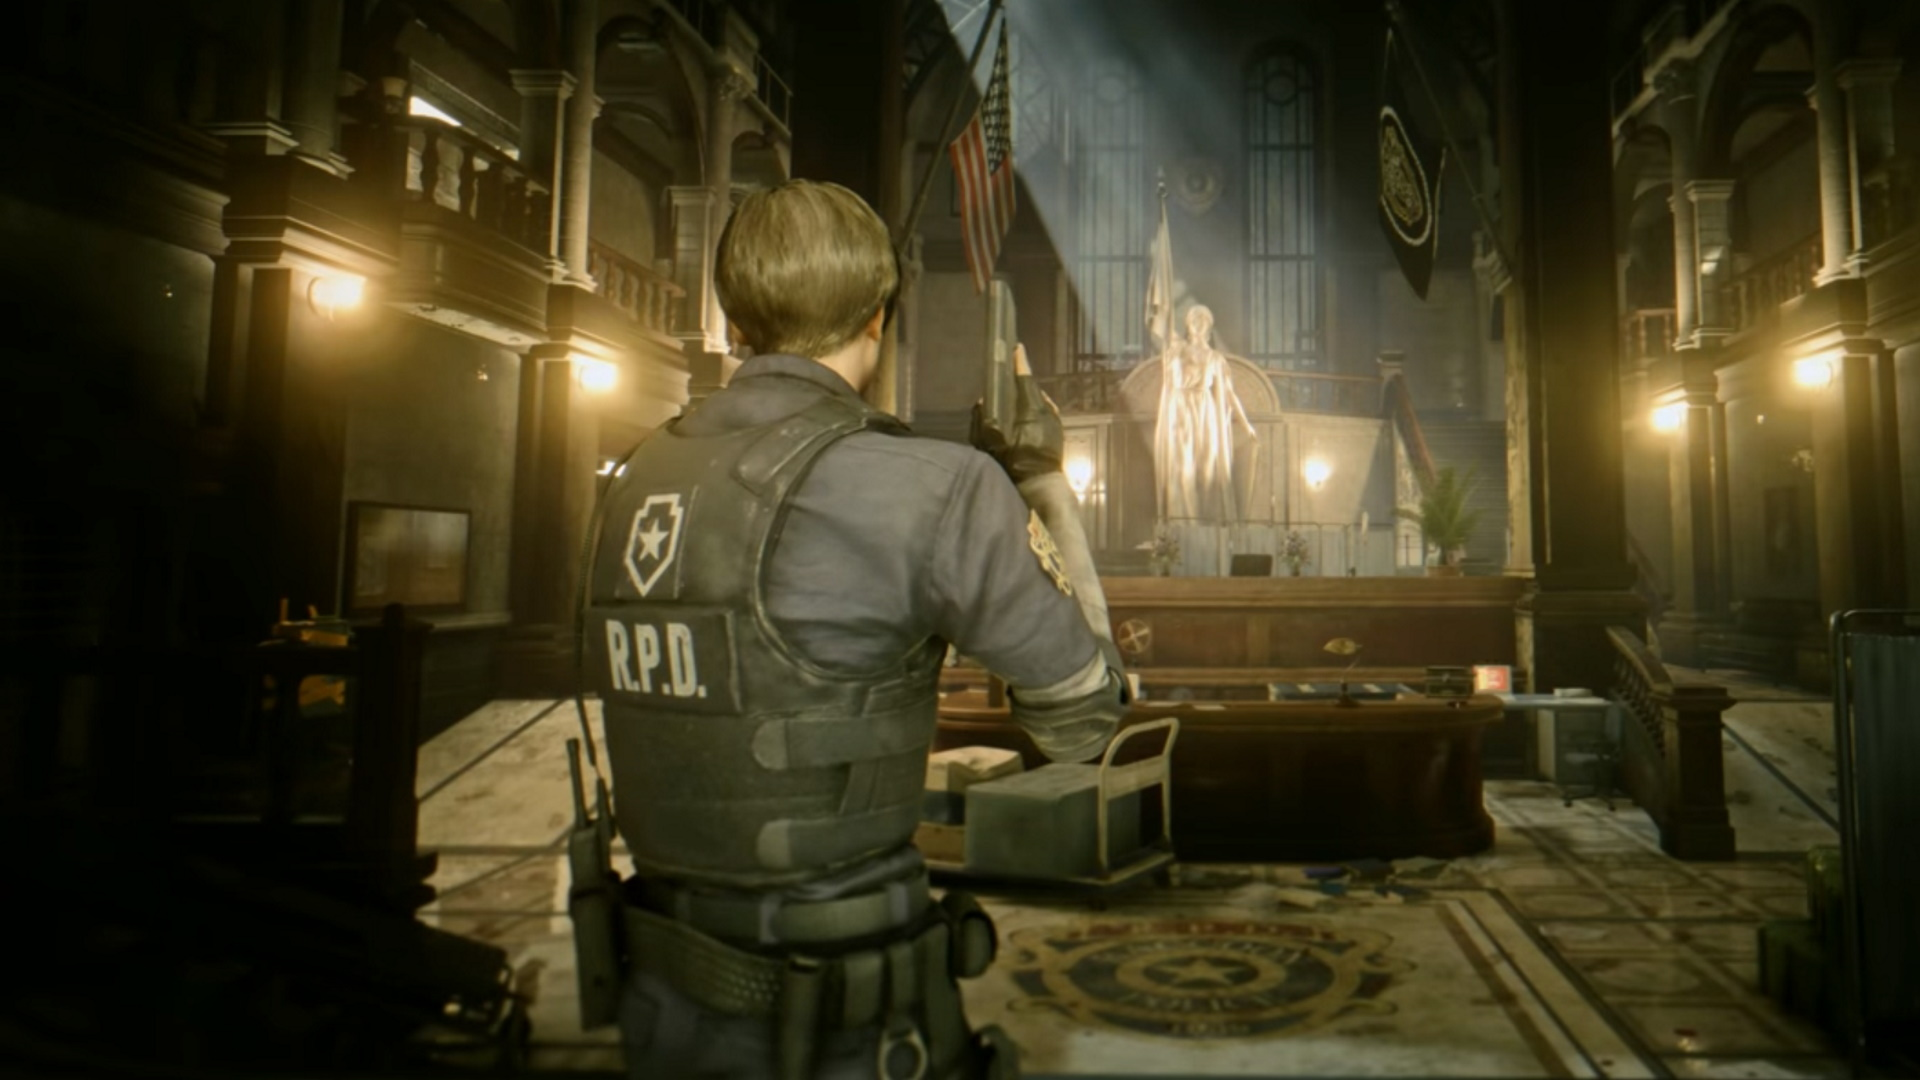 Resident Evil 2 gets a ray tracing mod ahead of Resident Evil 3's release